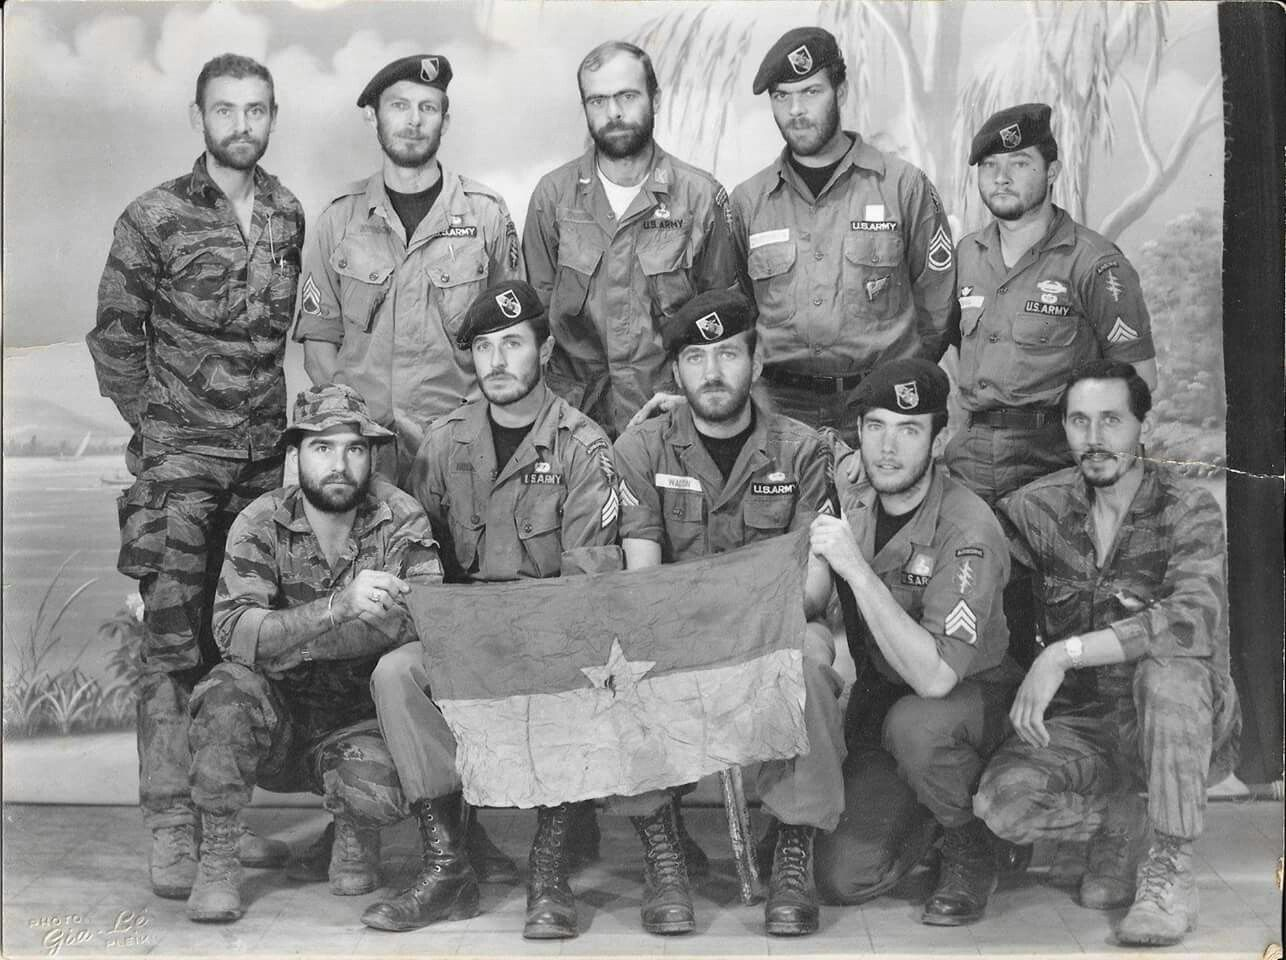 us soldiers in vietnam essay You can center your topic on examining how the seemingly ragtag vietnam forces gave the united states technologically advanced soldiers  let the vietnam war essay.